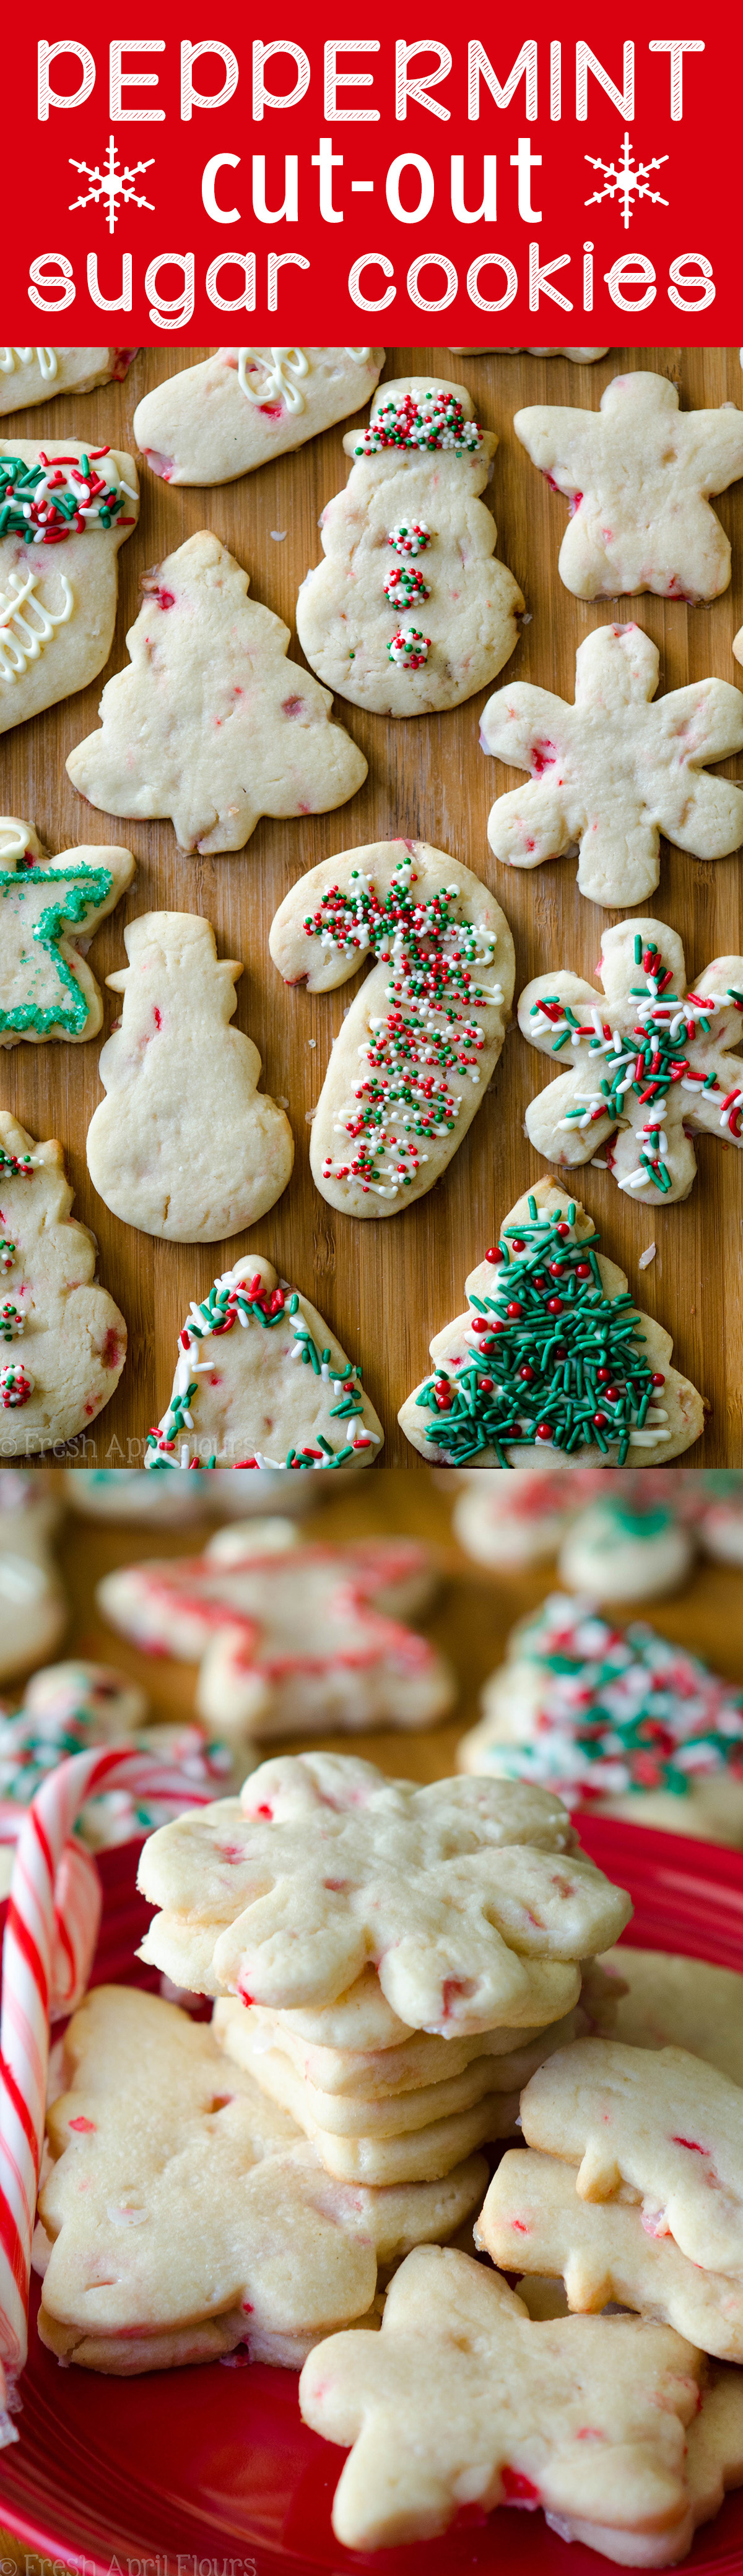 Peppermint Cut-Out Sugar Cookies: No dough chilling necessary for these soft cut-out sugar cookies that are perfect for decorating with chocolate, icing, or sprinkles. Crisp edges, soft centers, and filled with bits of candy canes!